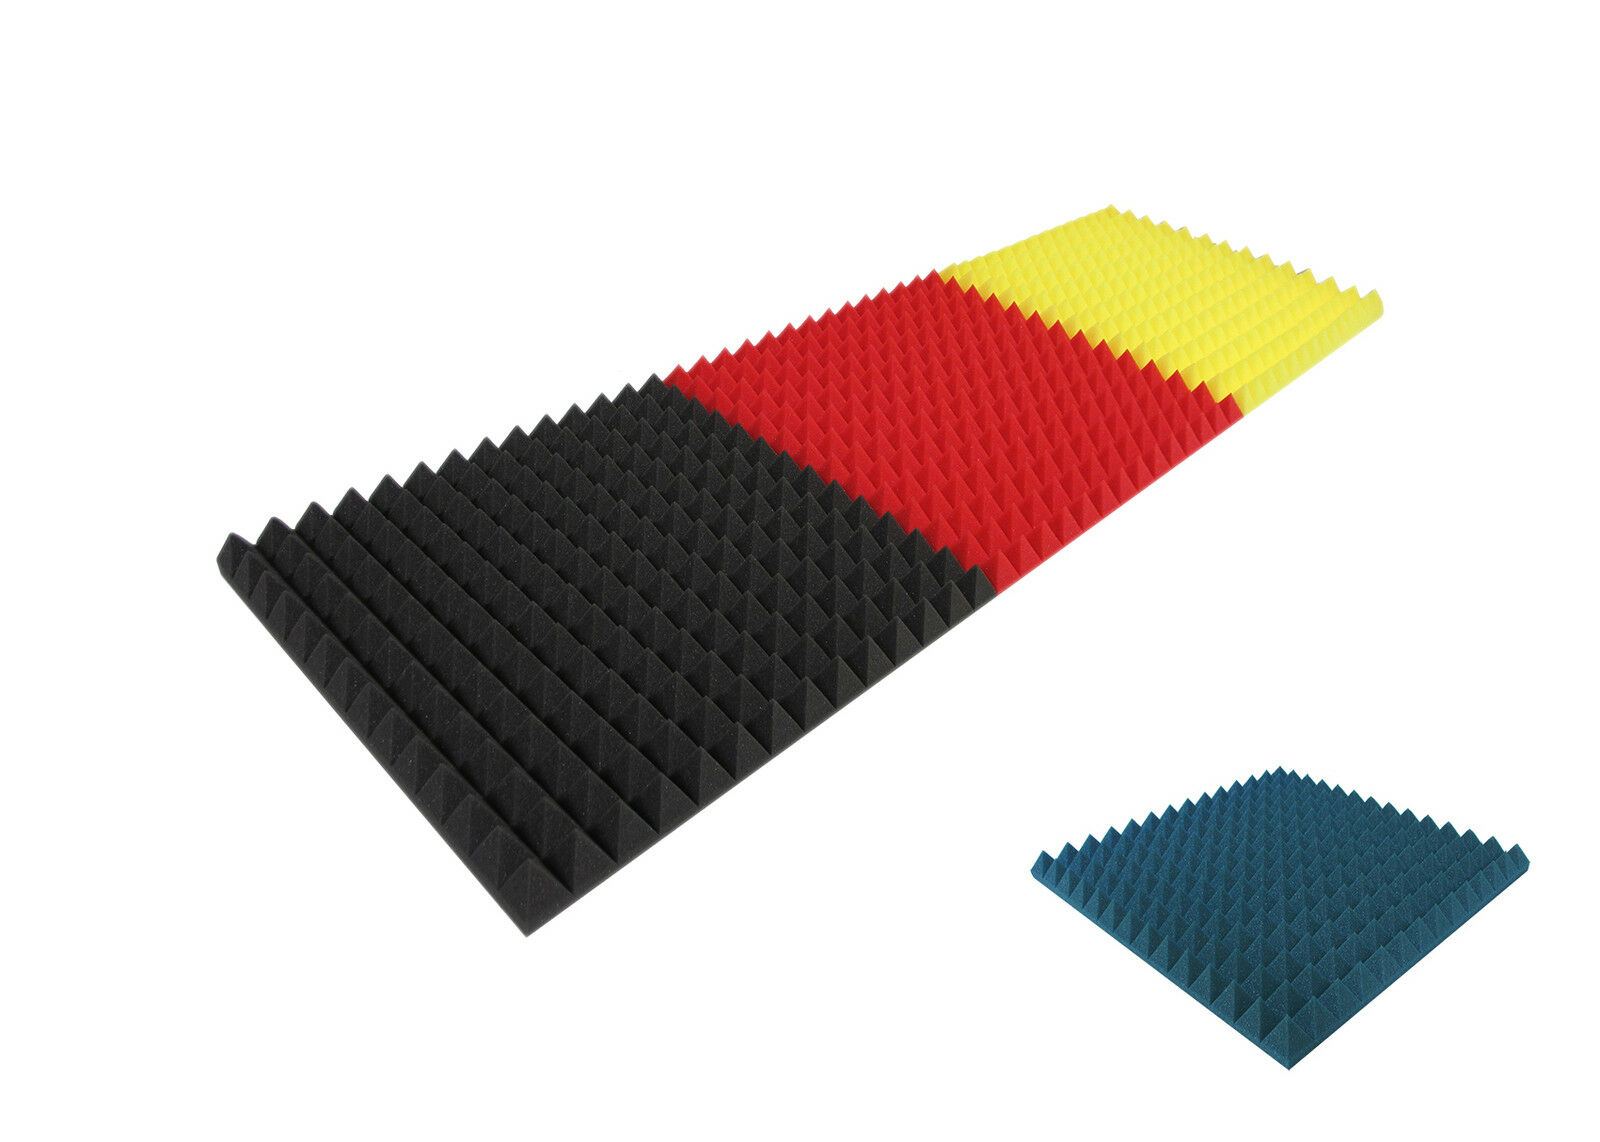 °°° Acoustic sound insulation foam pyramids new Farbe made in germany °°°